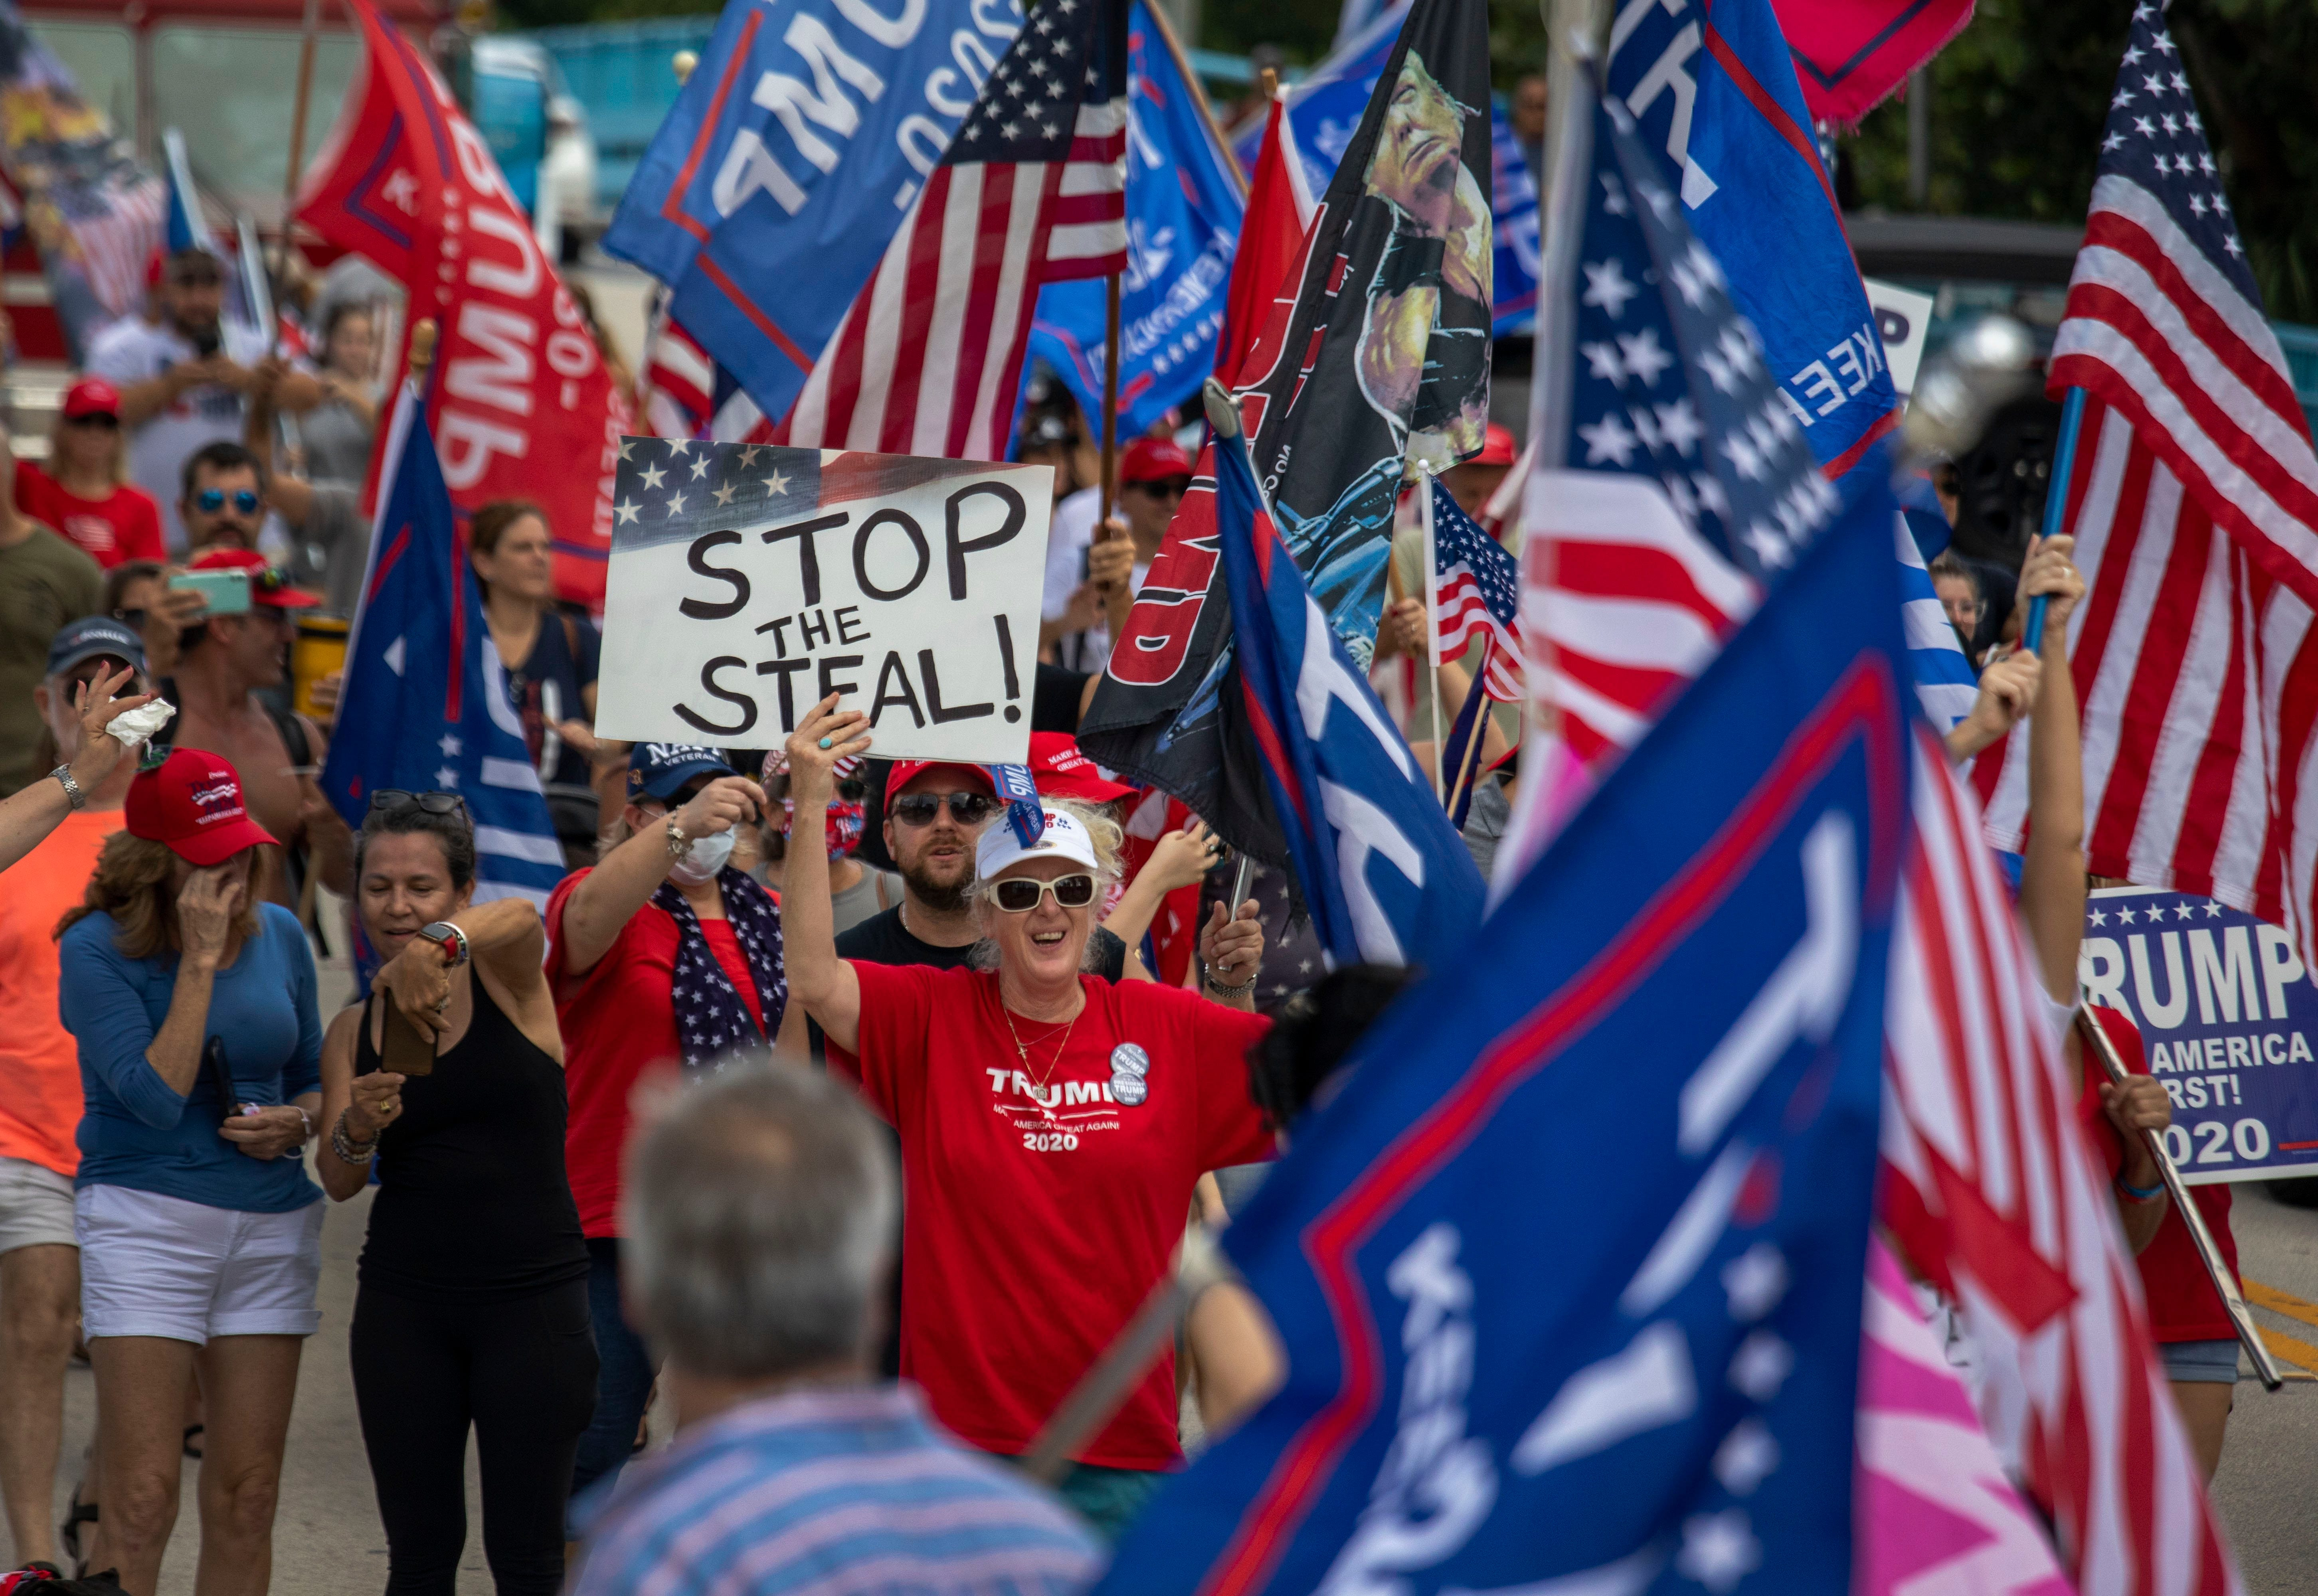 Trump supporters cheer for the President as they march along Atlantic Avenue during a Stop the Steal rally in Delray Beach, Florida on November 14, 2020. (Greg Lovett / The Palm Beach Post)Wpb 111520 Stop The St2 3